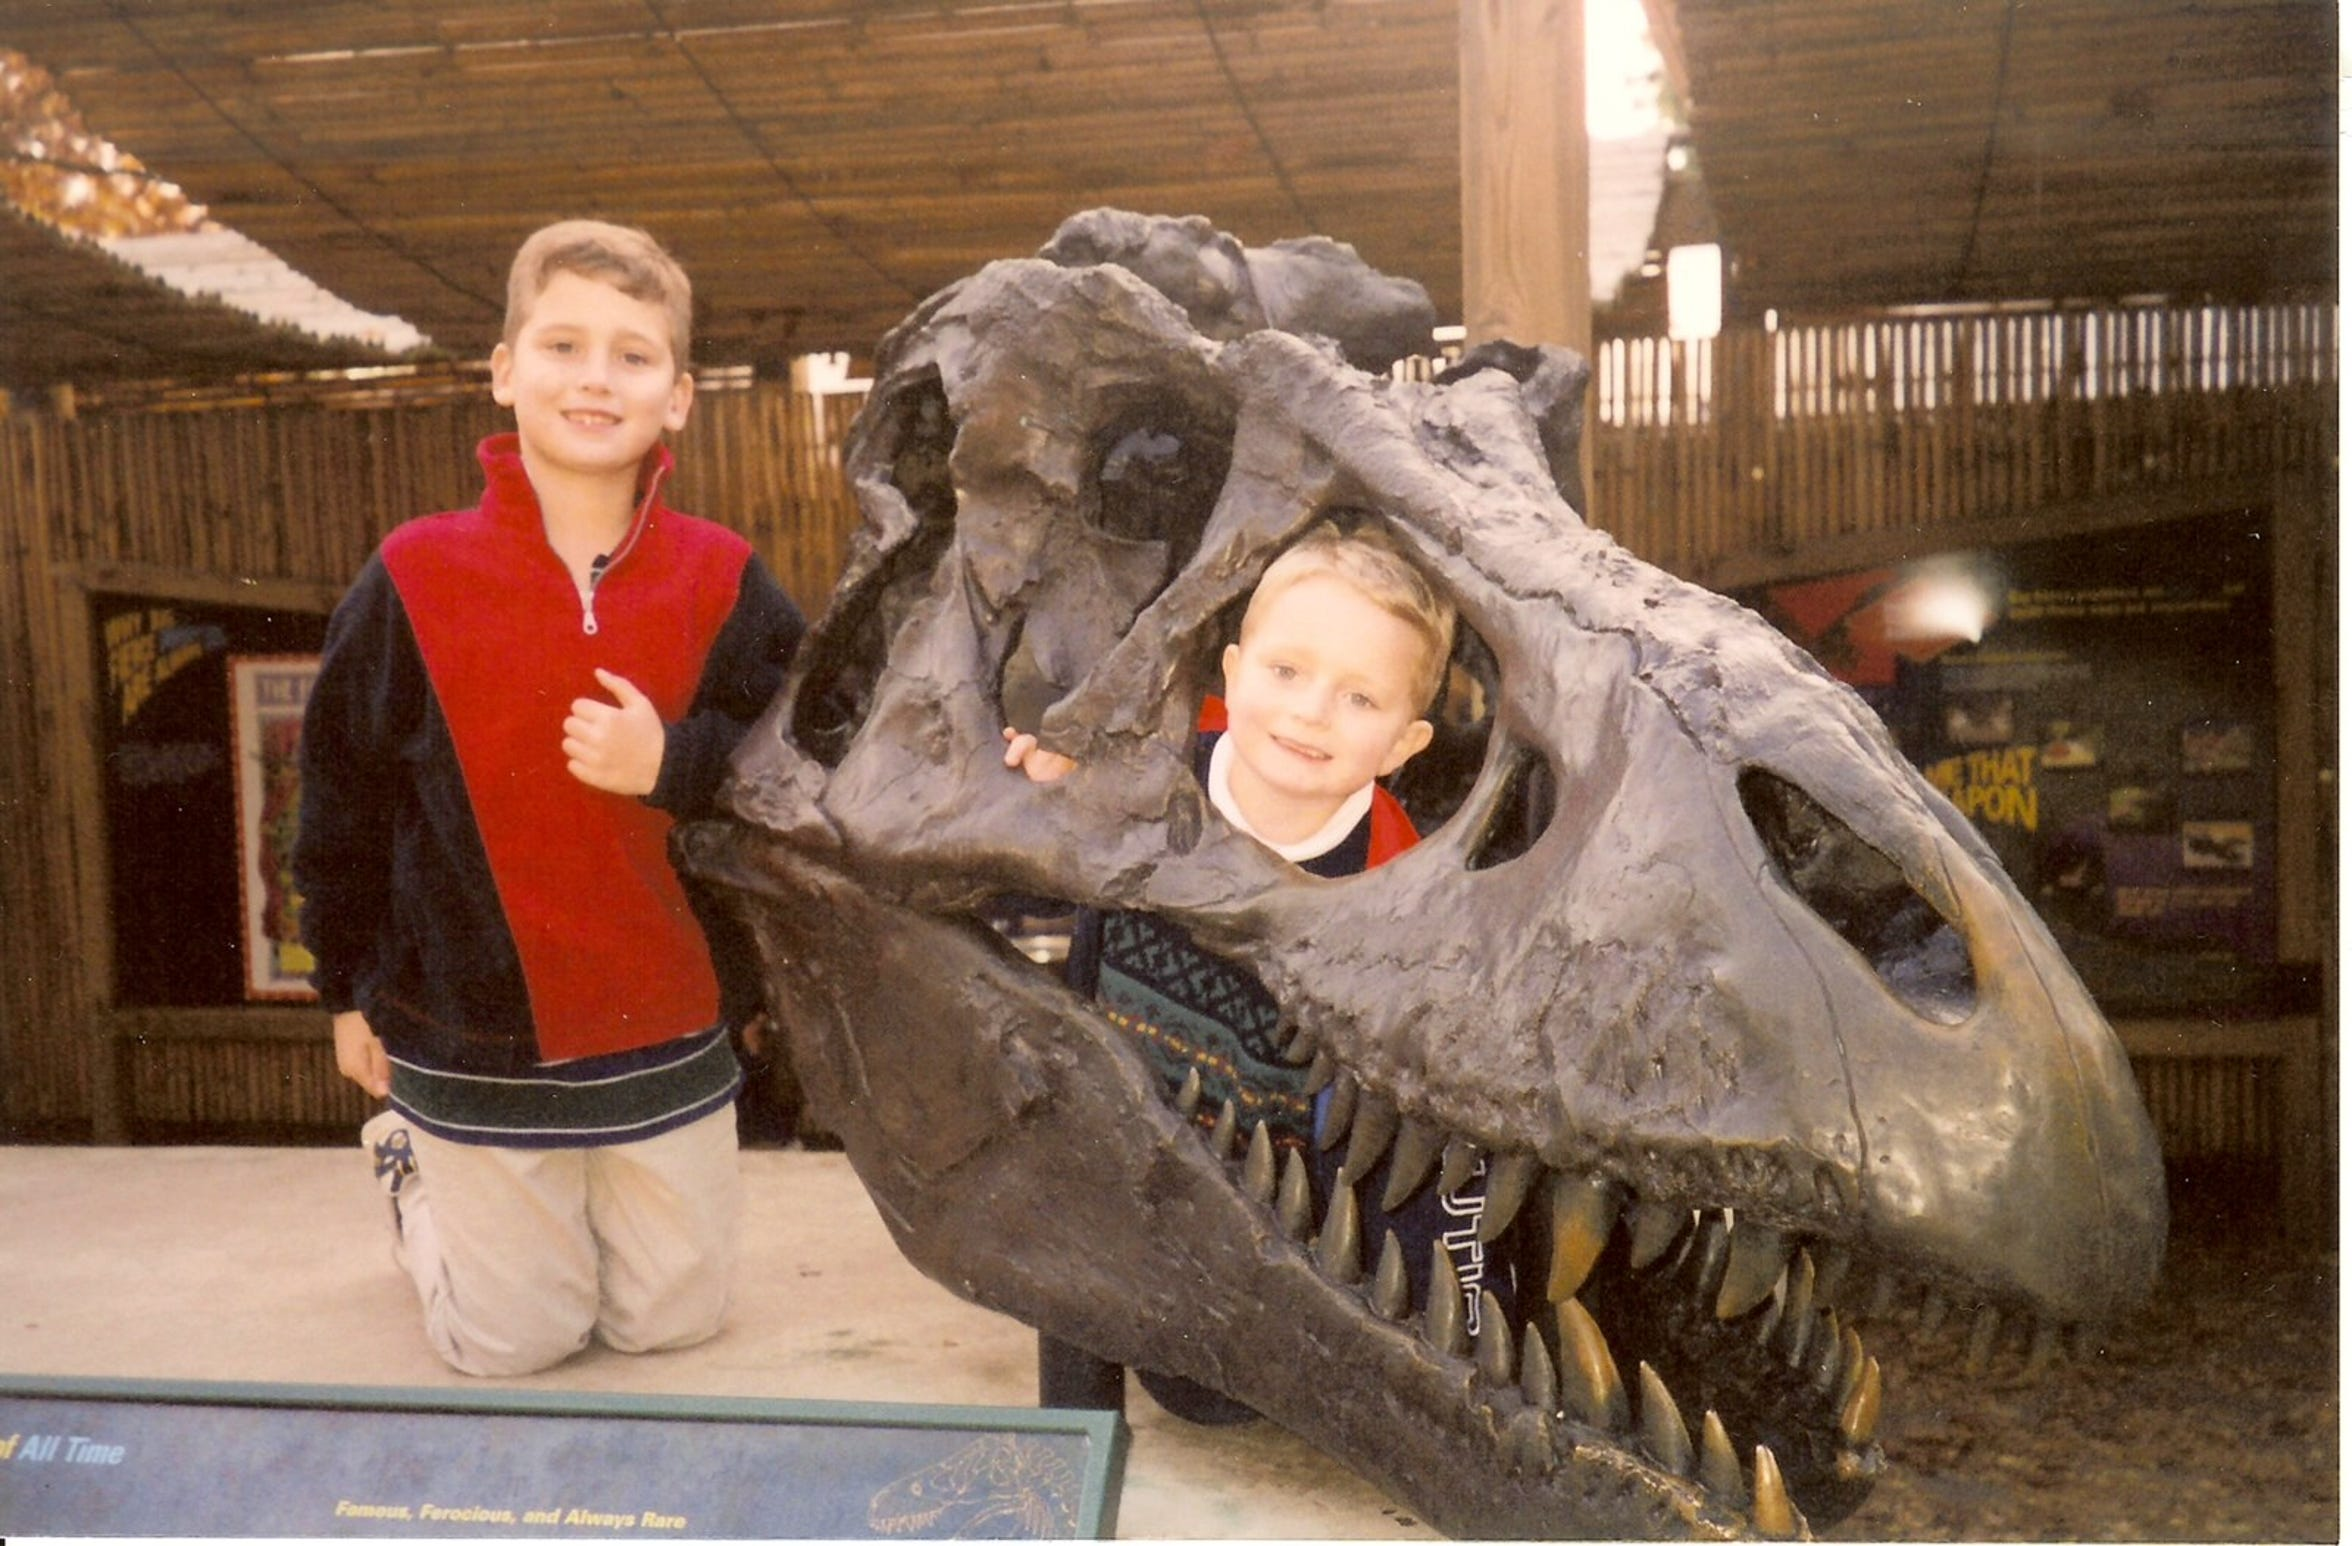 Purdue fifth-year senior forward Evan Boudreaux (center) and his brother, Chris, on a family trip to the Museum of the Rockies in 2006.